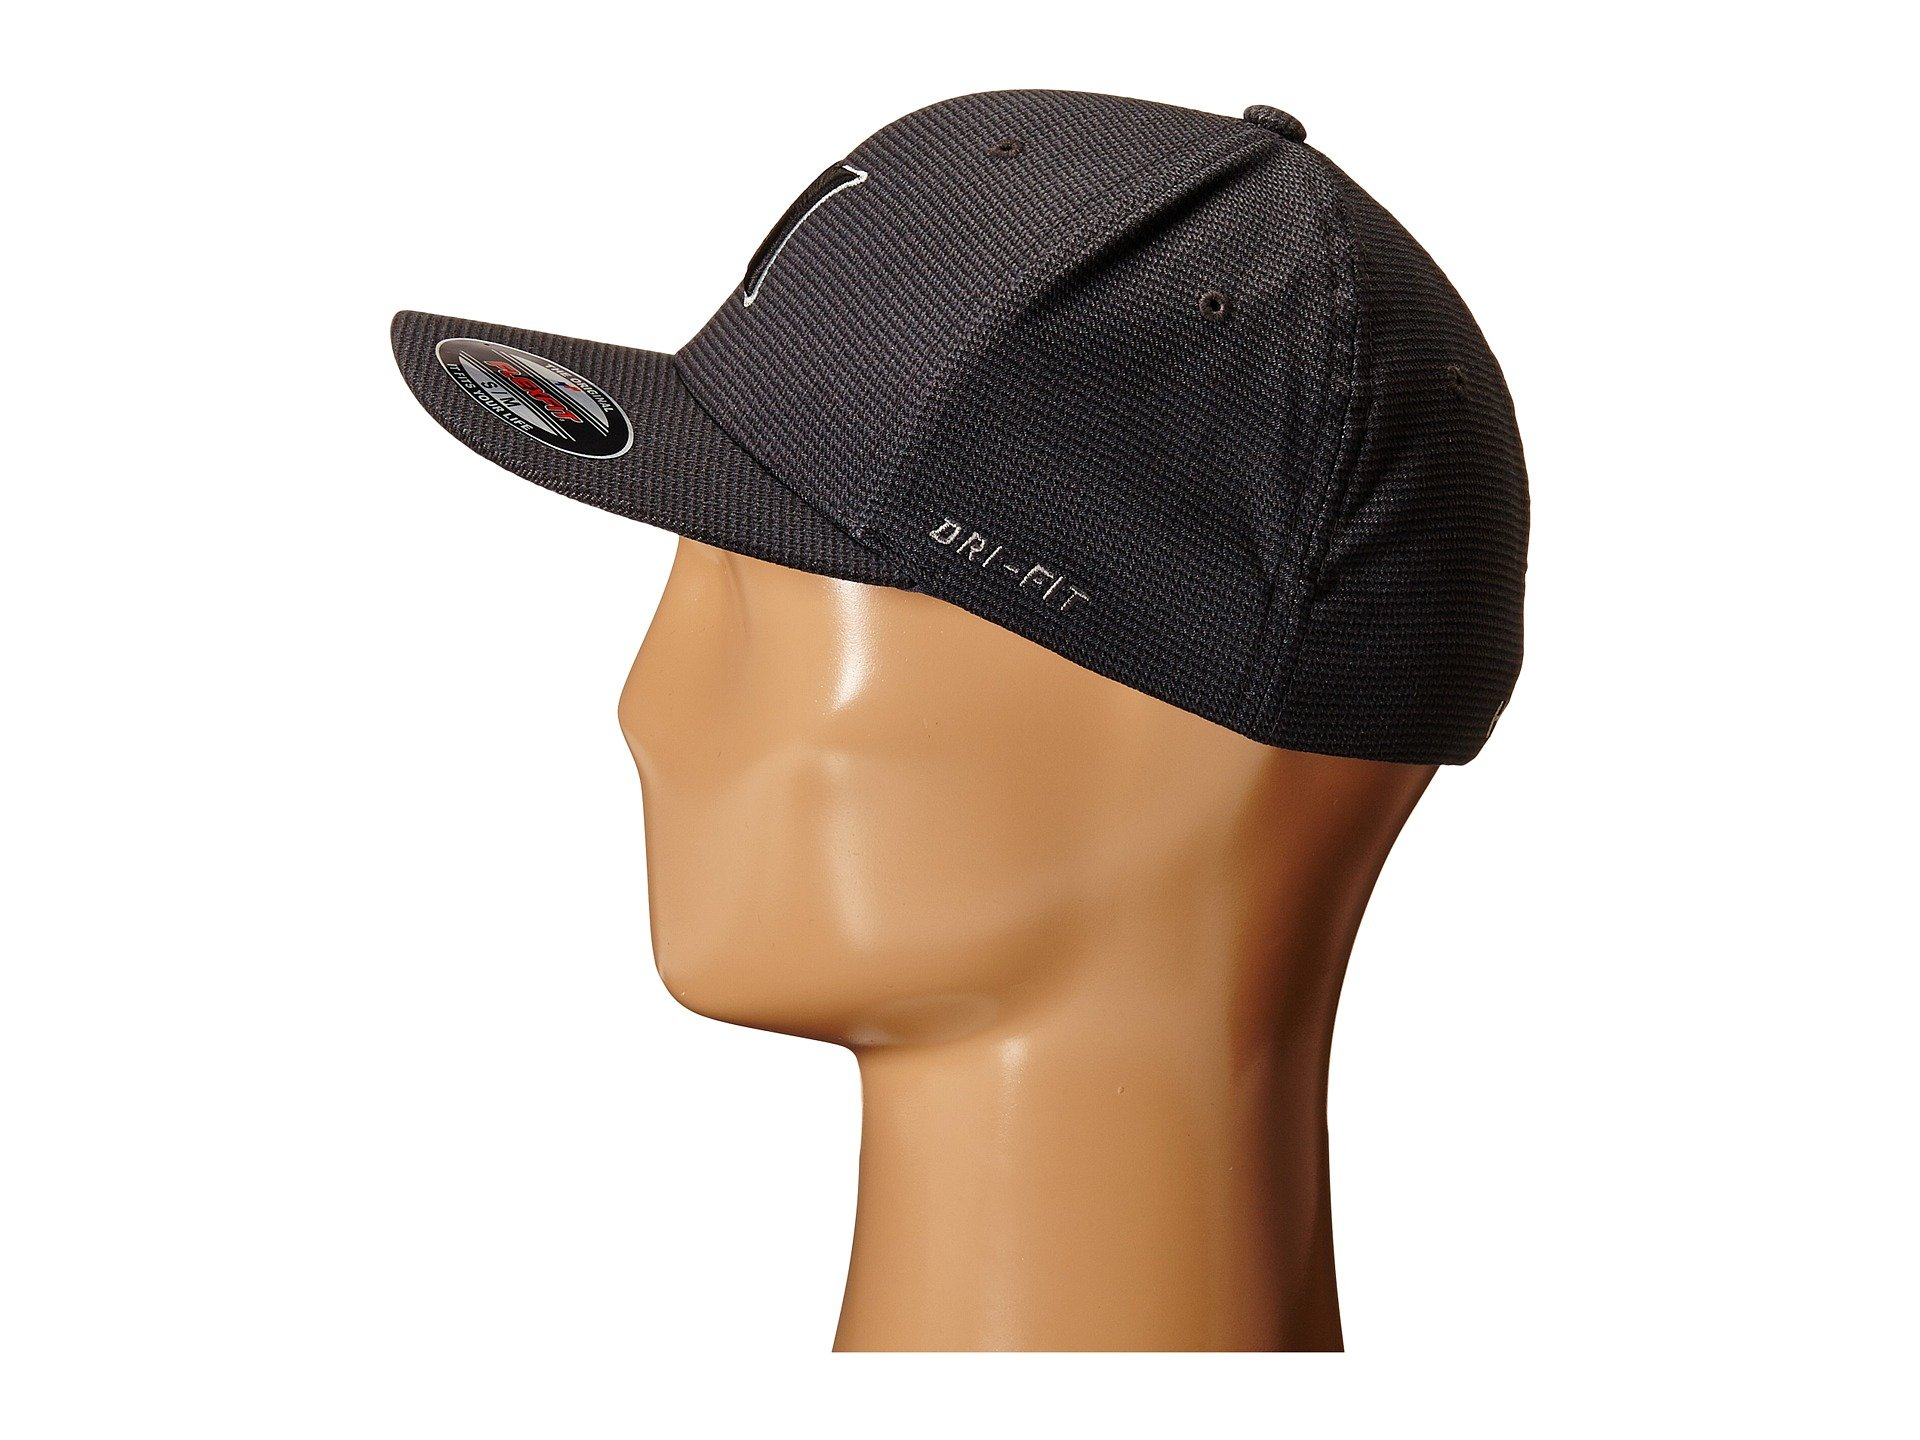 9bb87cbc255c4 Hurley Dri-fit Halyard Fitted Hat in Black for Men - Lyst